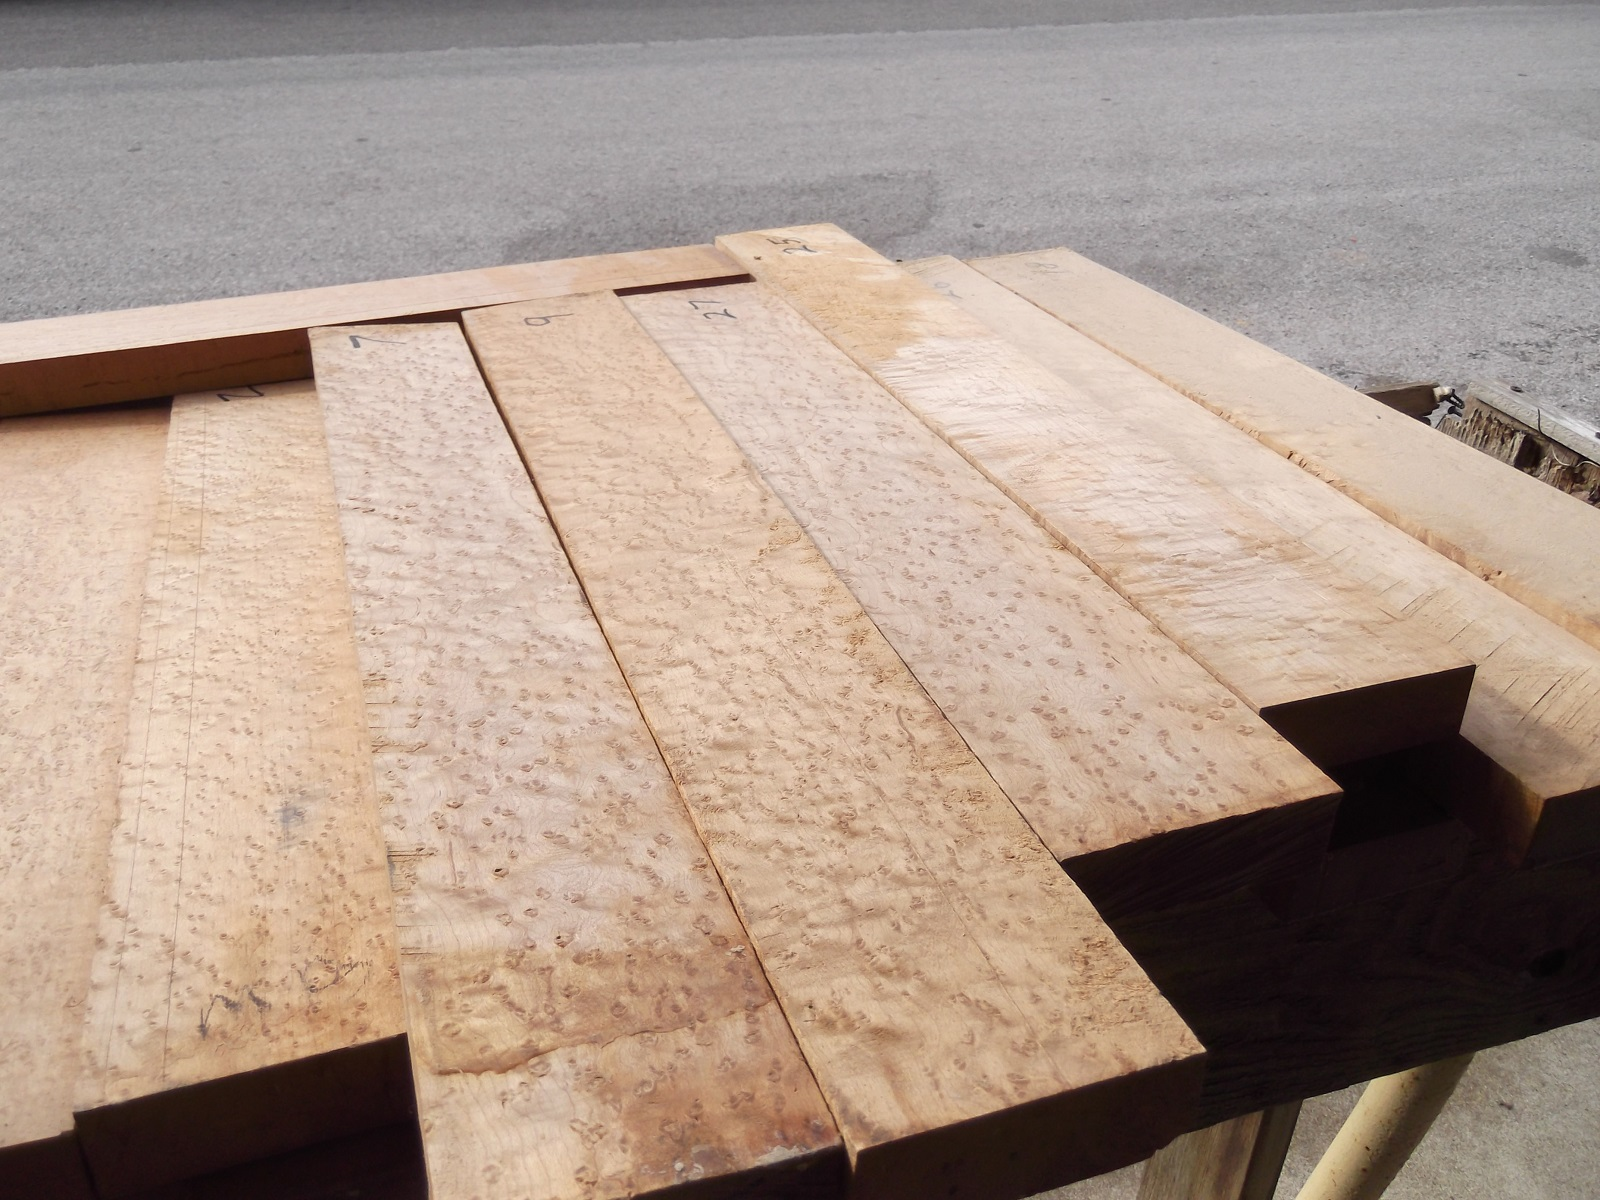 Birdseye Maple Not A Separate Species Of Wood Is The Result An Unexplained Phenomenon That Results In Typical Grain